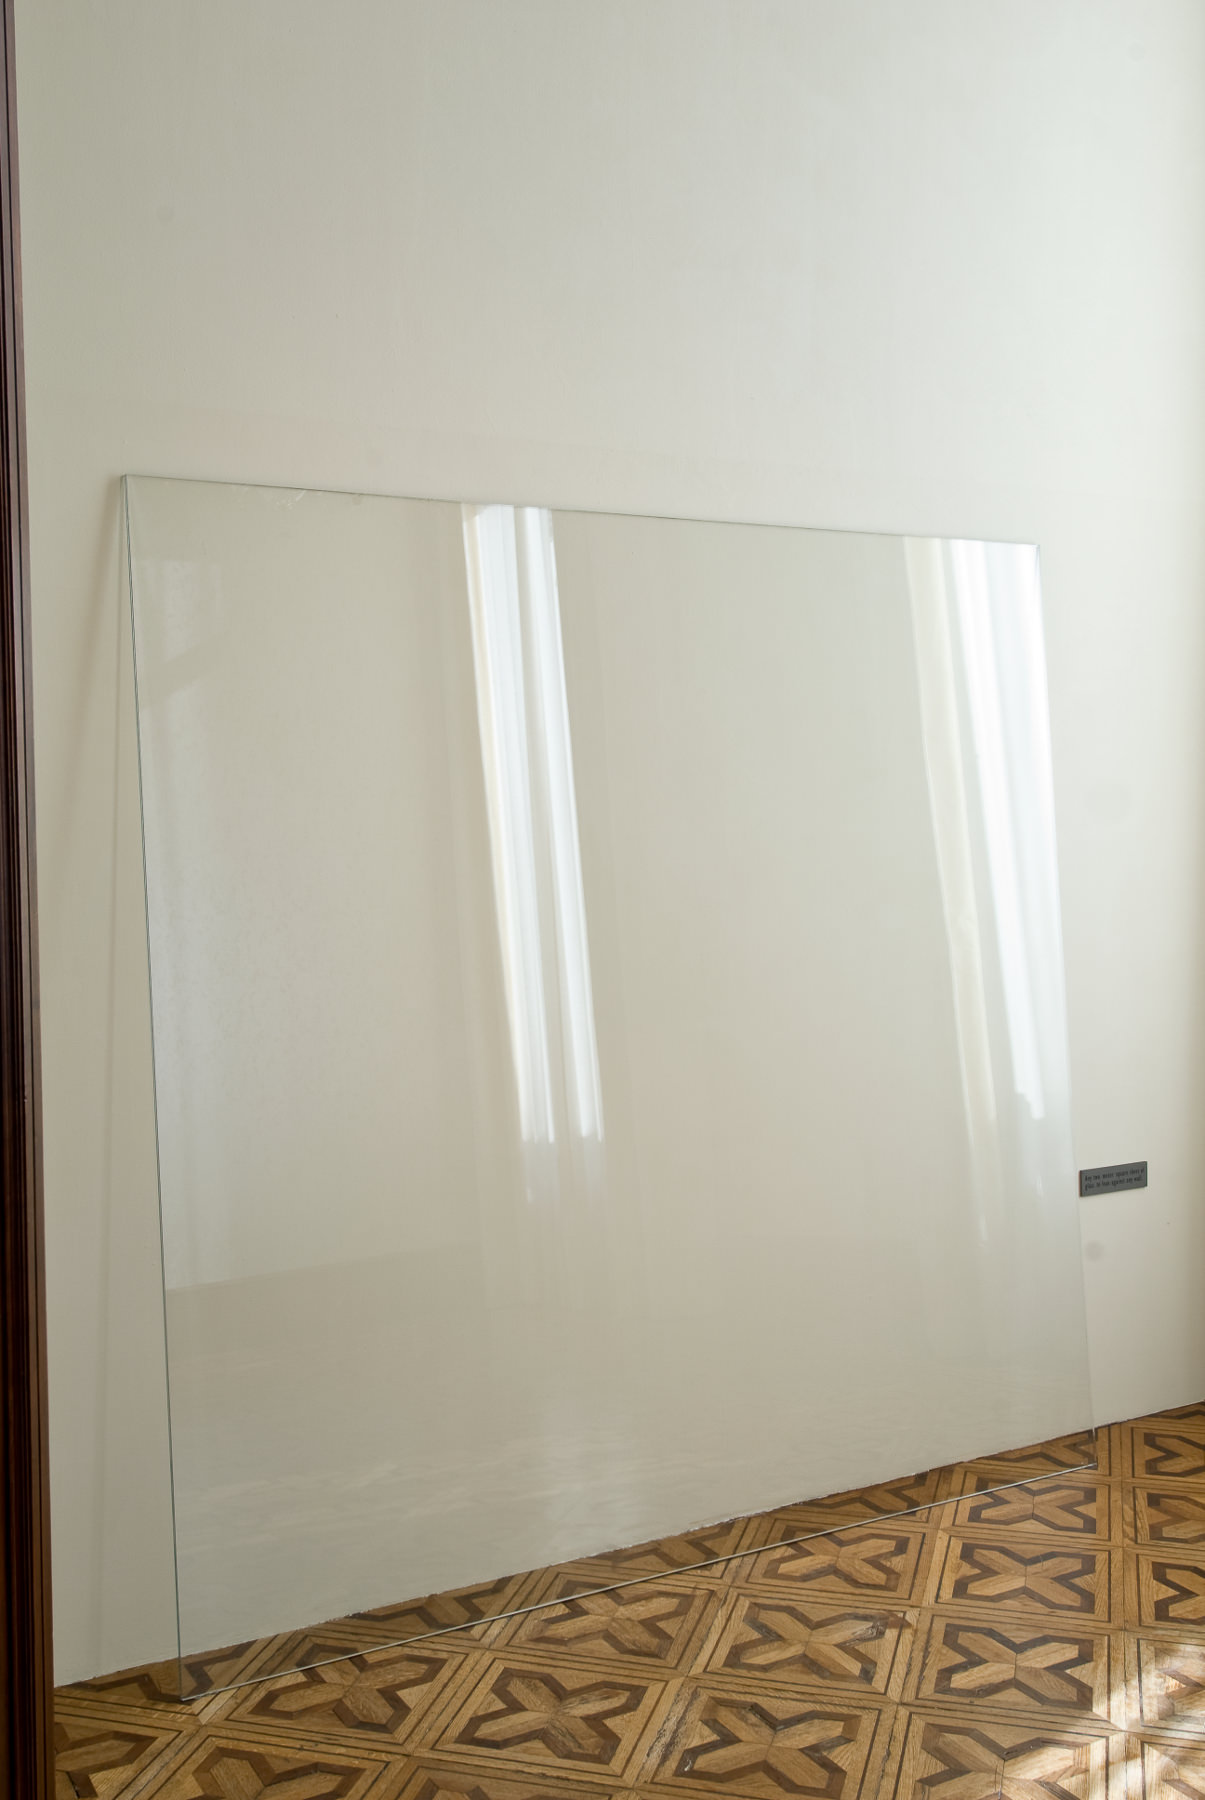 Joseph Kosuth - Any two Meter Square Sheet of Glass to Lean Against any Wall